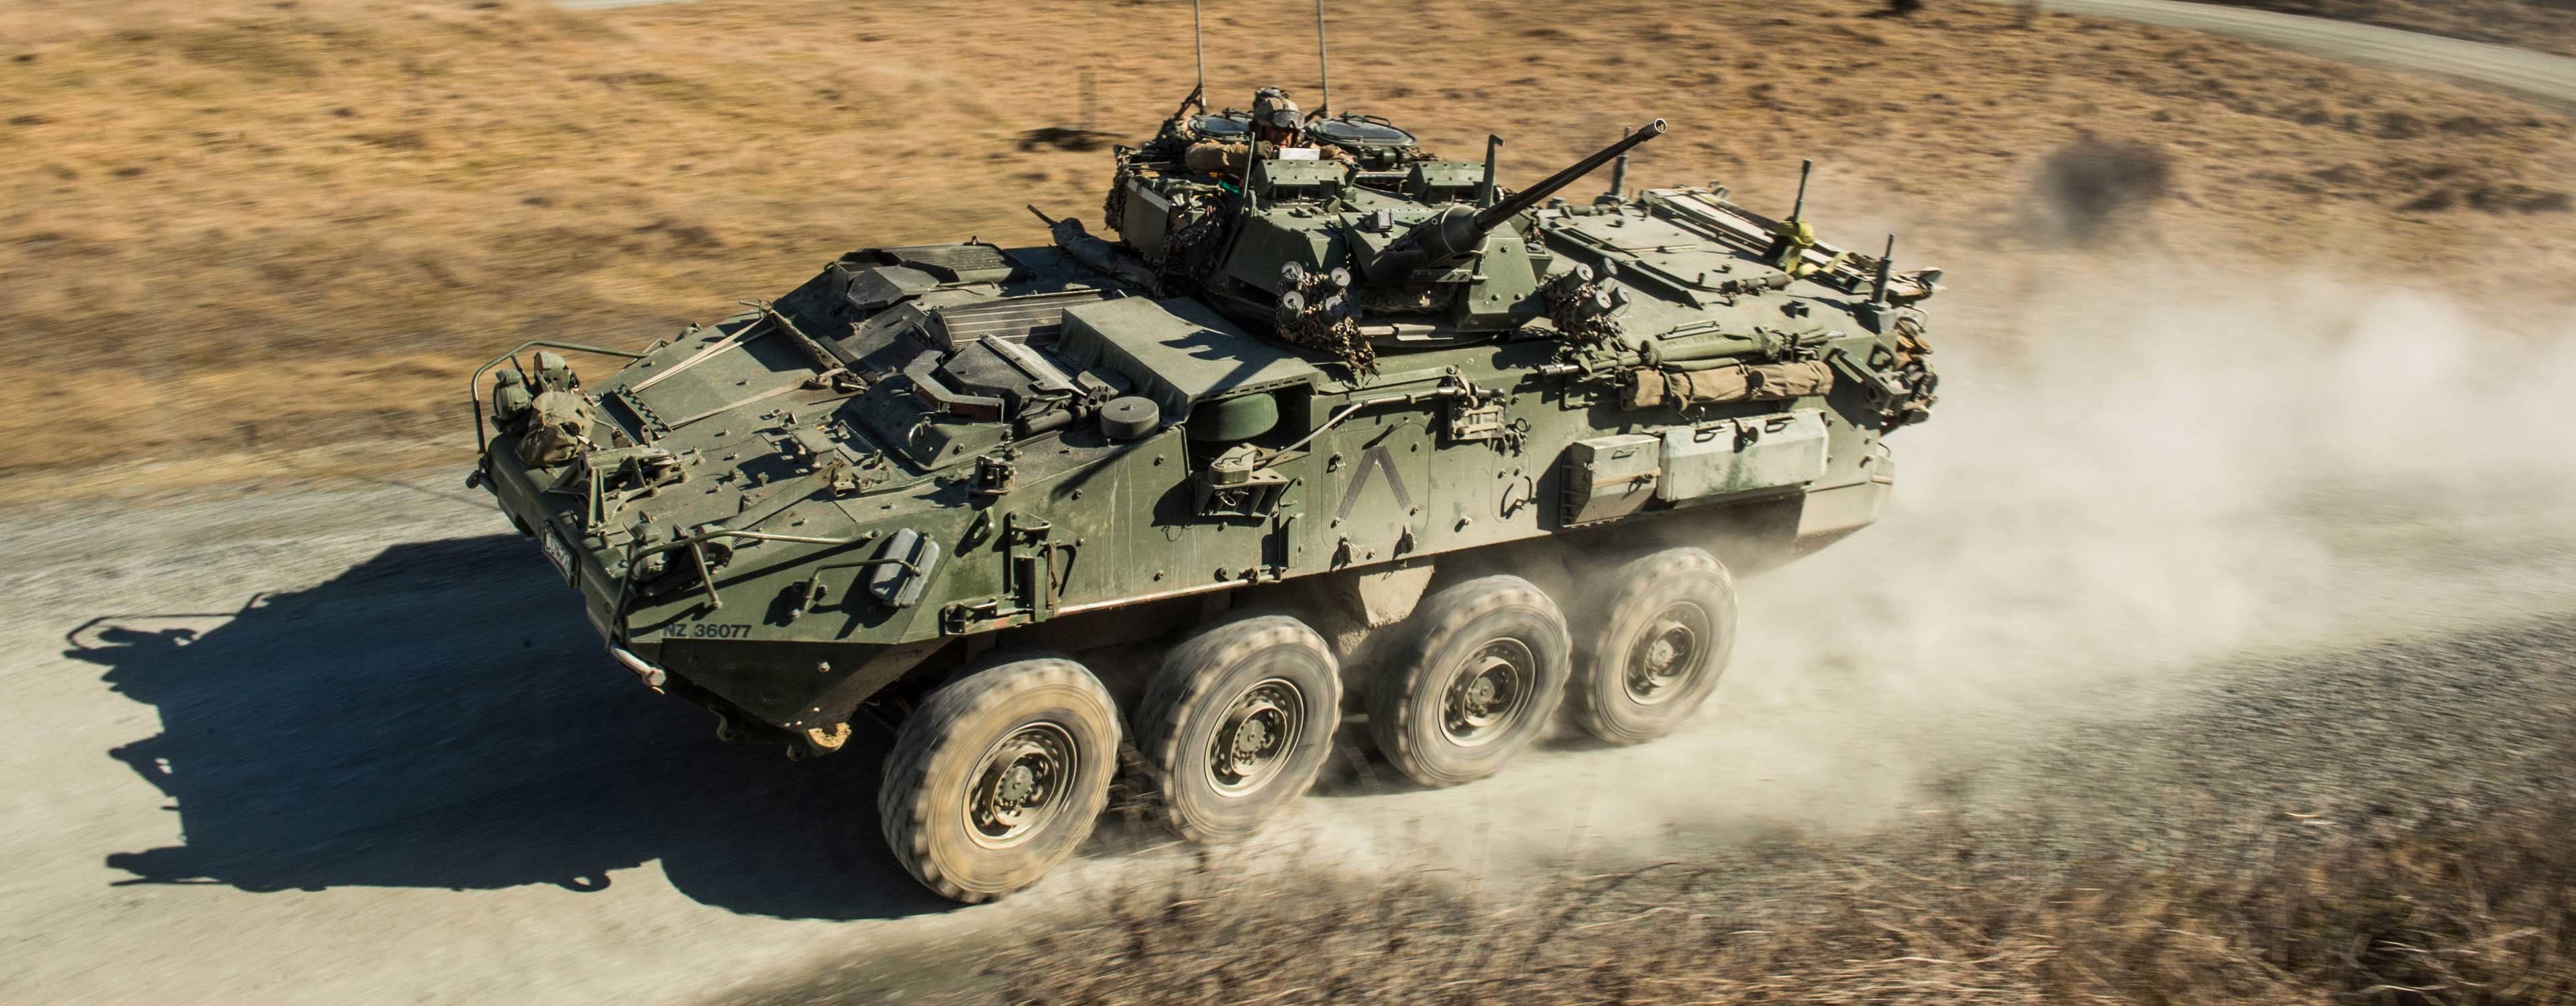 Army Armoured full width 02